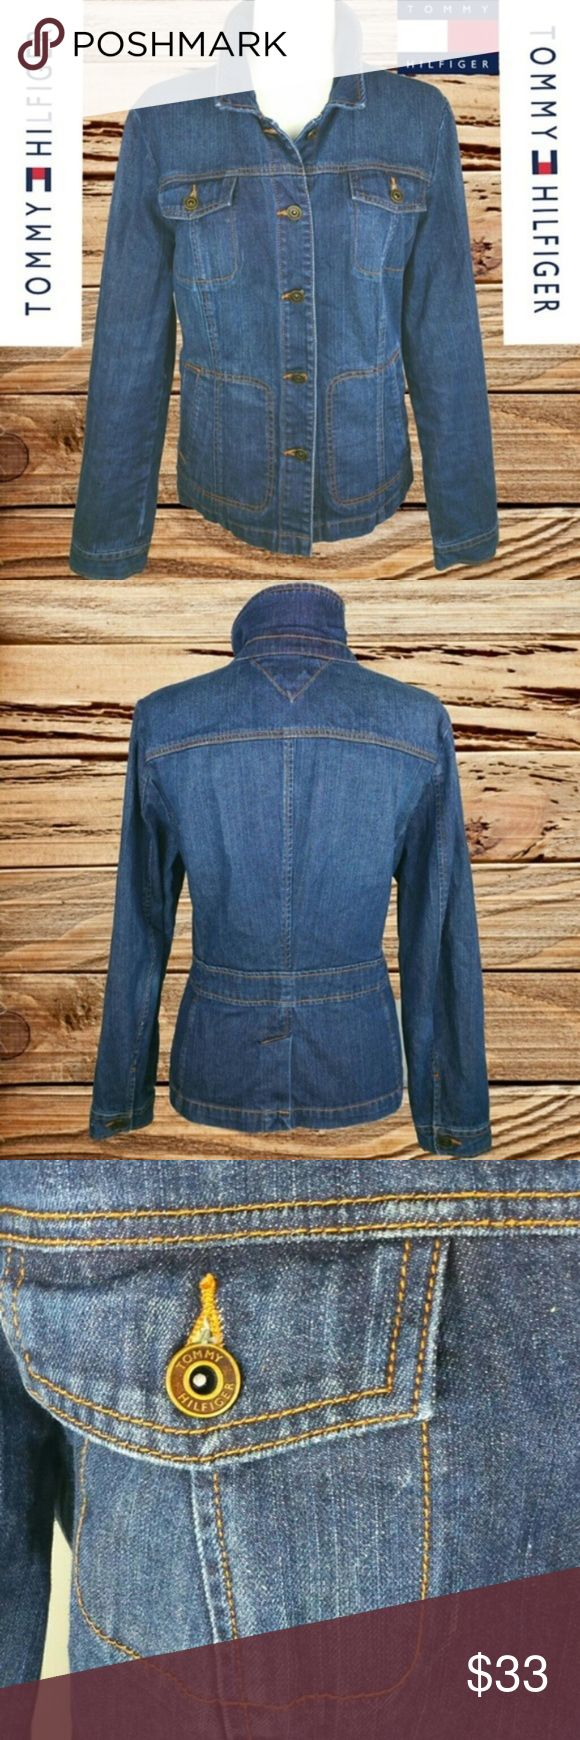 TOMMY HILFIGER - VINTAGE DENIM JACKET! ❤️ TOMMY HILFIGER - VINTAGE DENIM JACKET!  EVERY ITEM IS DRY CLEANED!  EVERY ITEM IS WRAPPED!  OFFERS ALWAYS WELCOME! :)  BUY TWO OR MORE ITEMS AND SAVE 10%!! Jackets & Coats